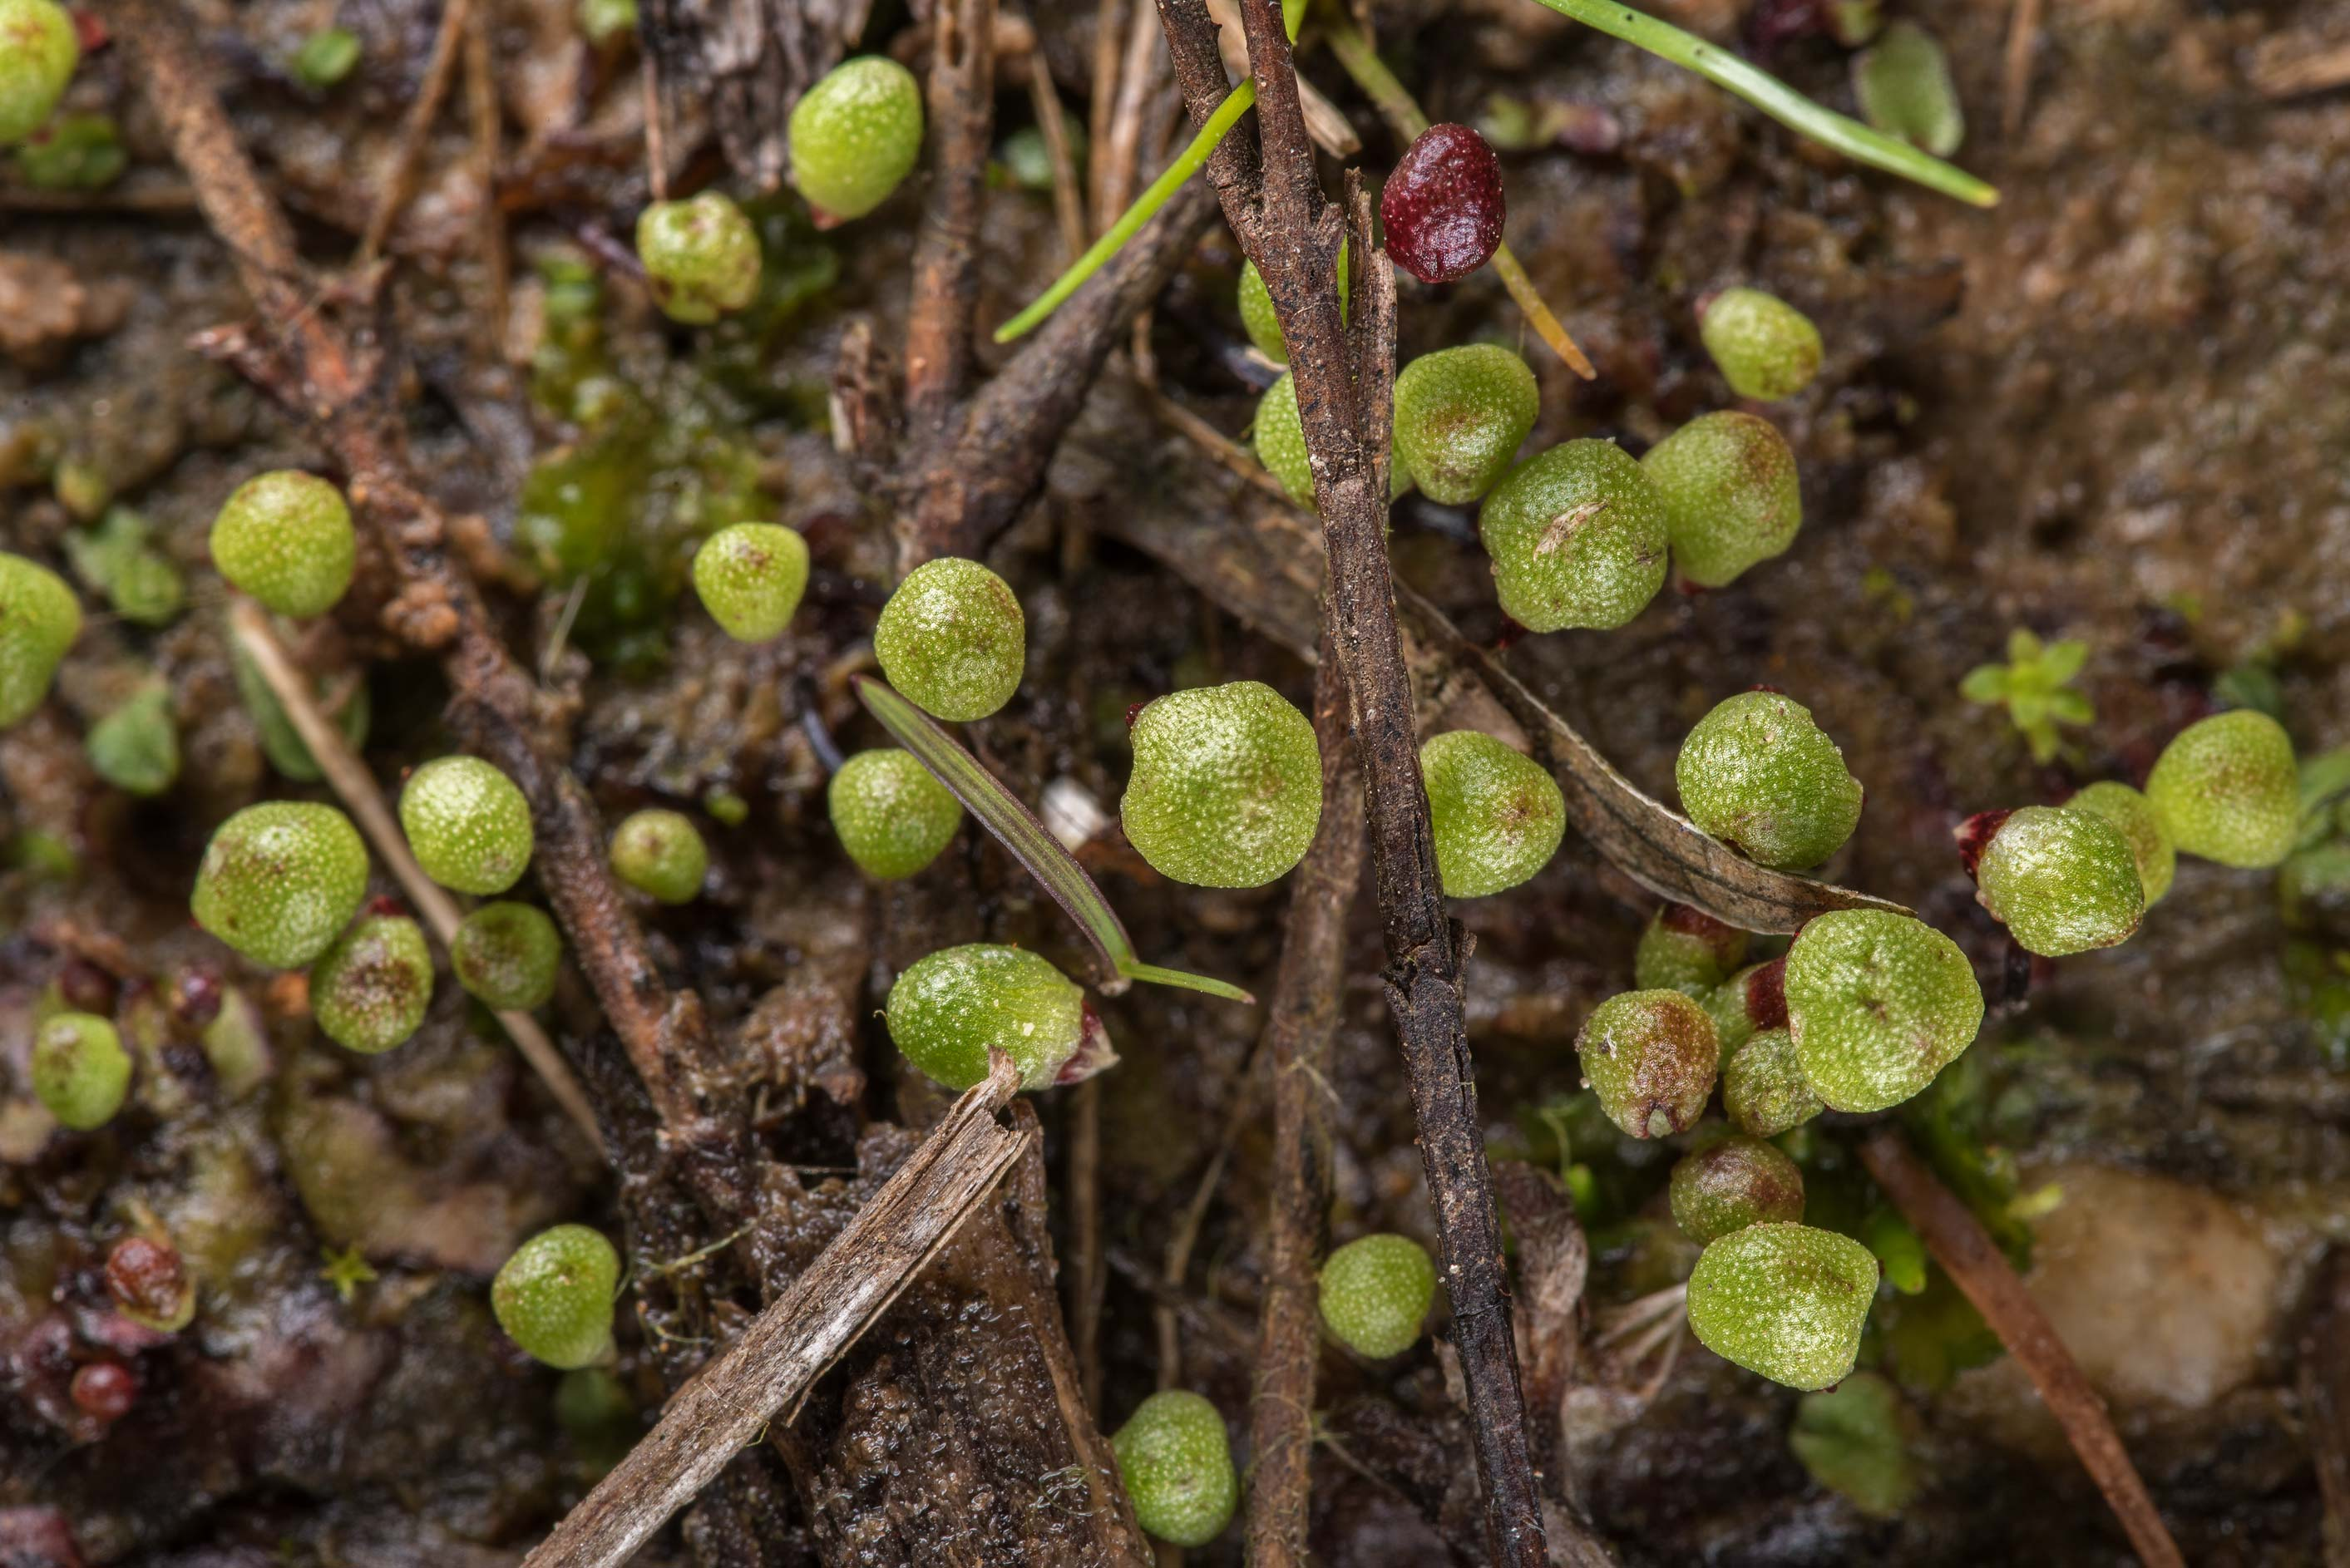 Hemispherical reproductive heads of a liverwort...Creek Park. College Station, Texas